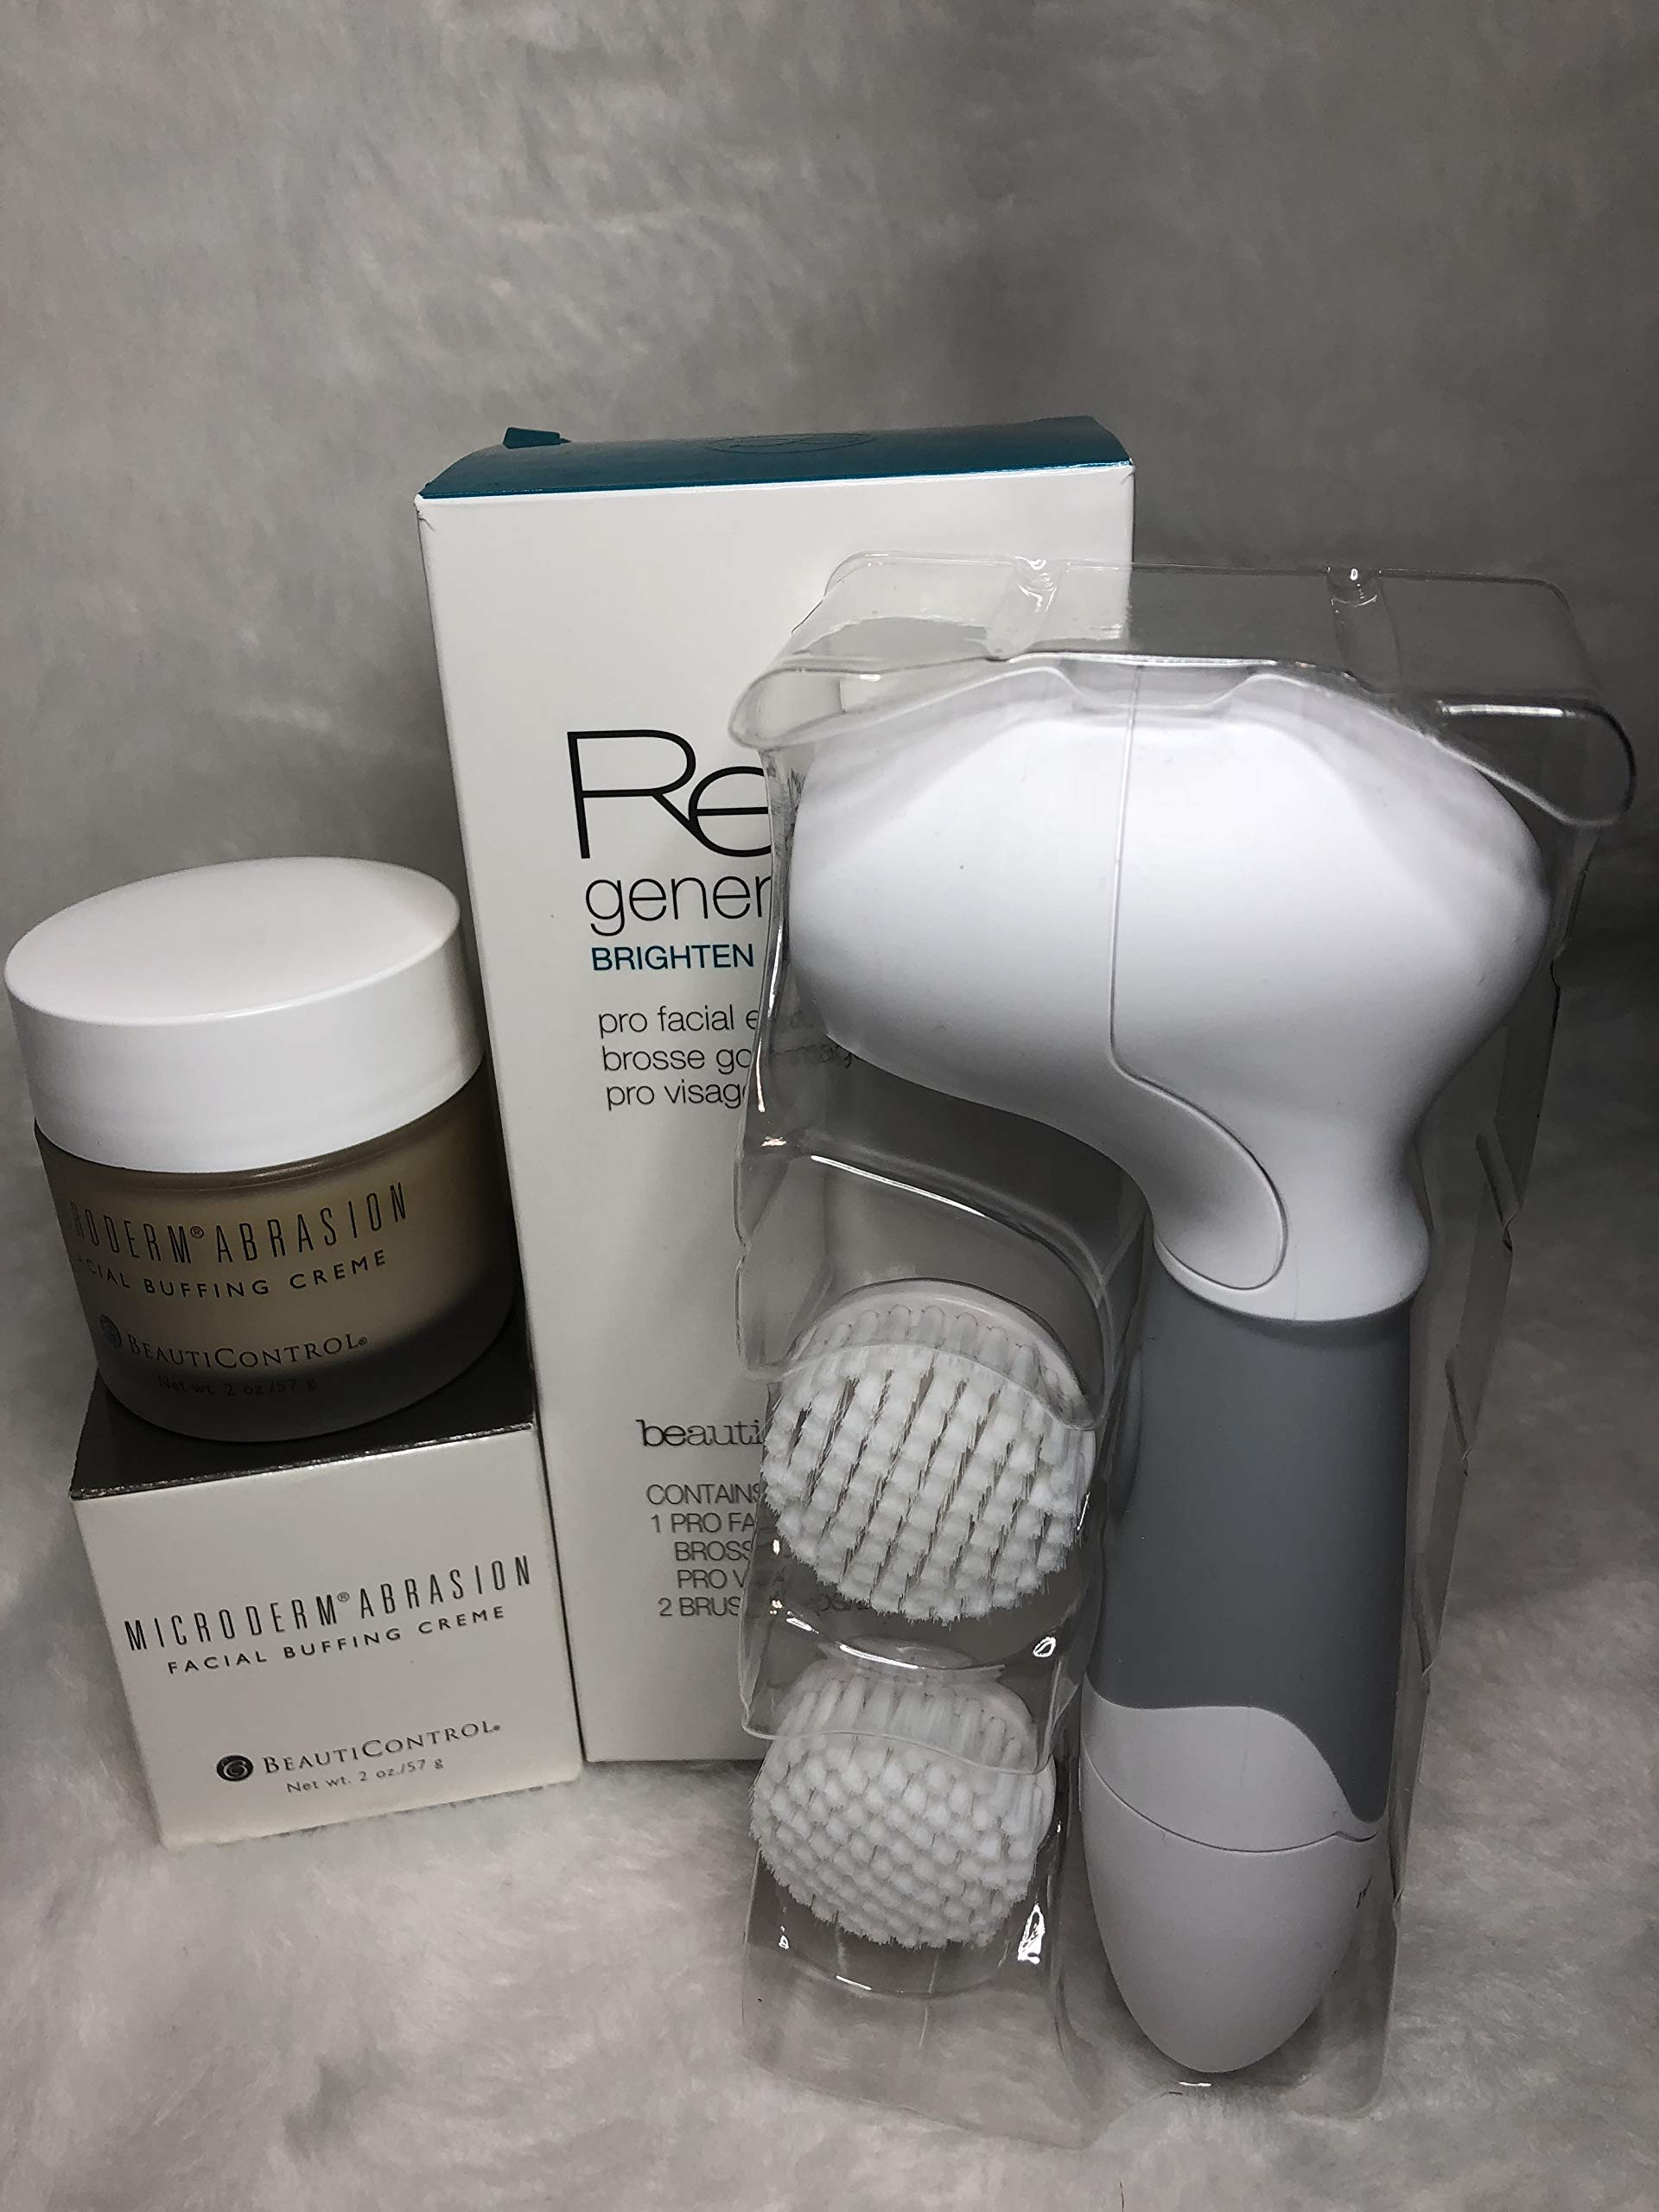 Beauticontrol Microderm Abrasion Creme & Brush by BeautiControl